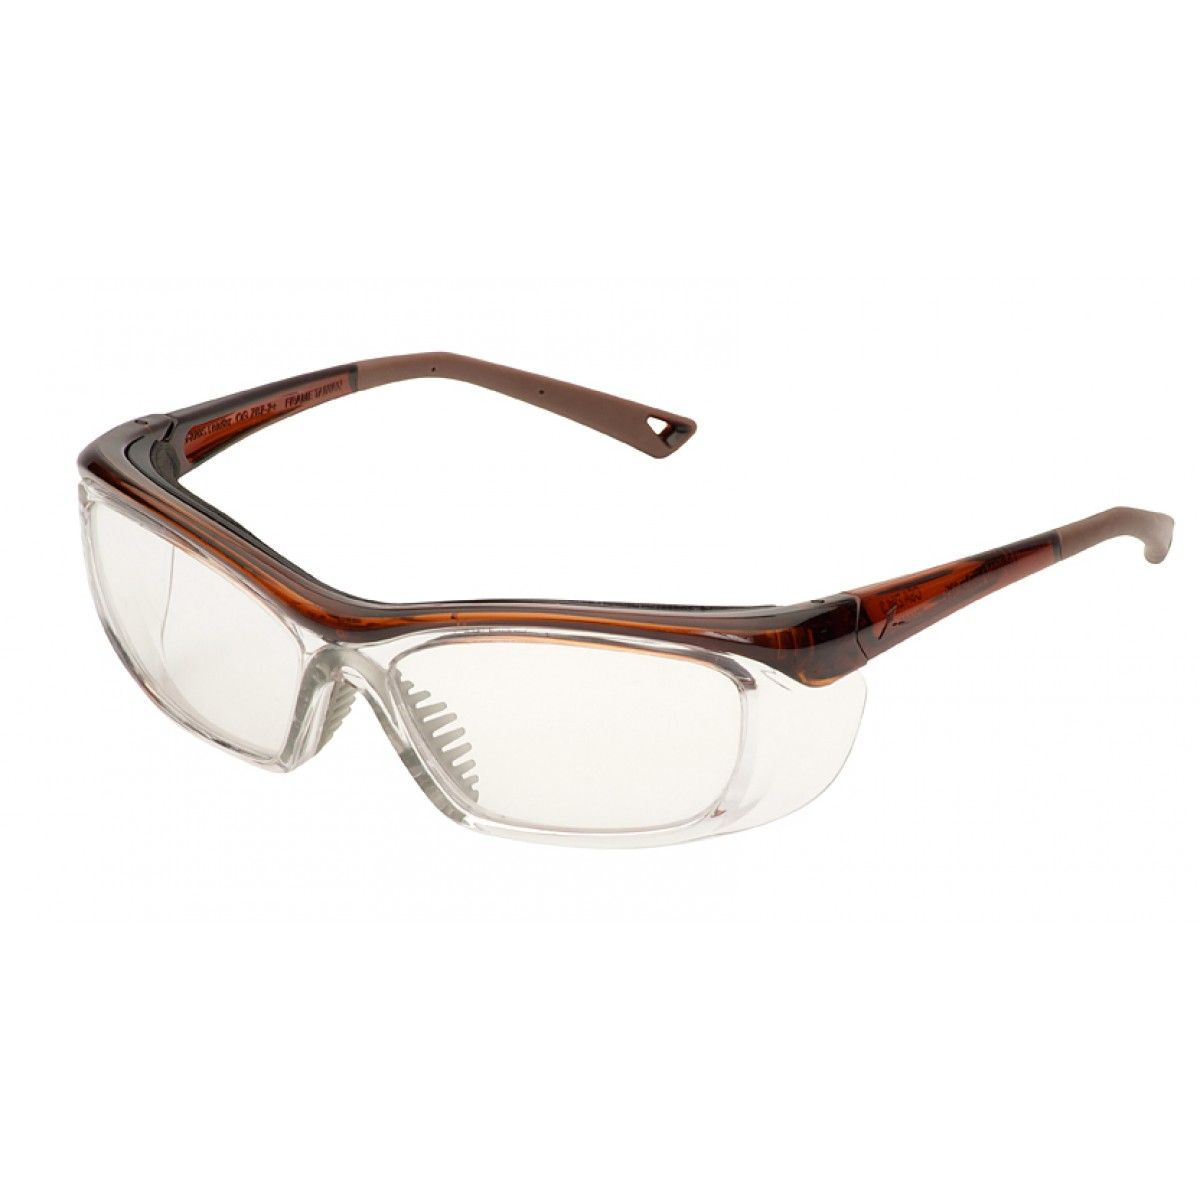 Fashion eyeglasses non prescription 41